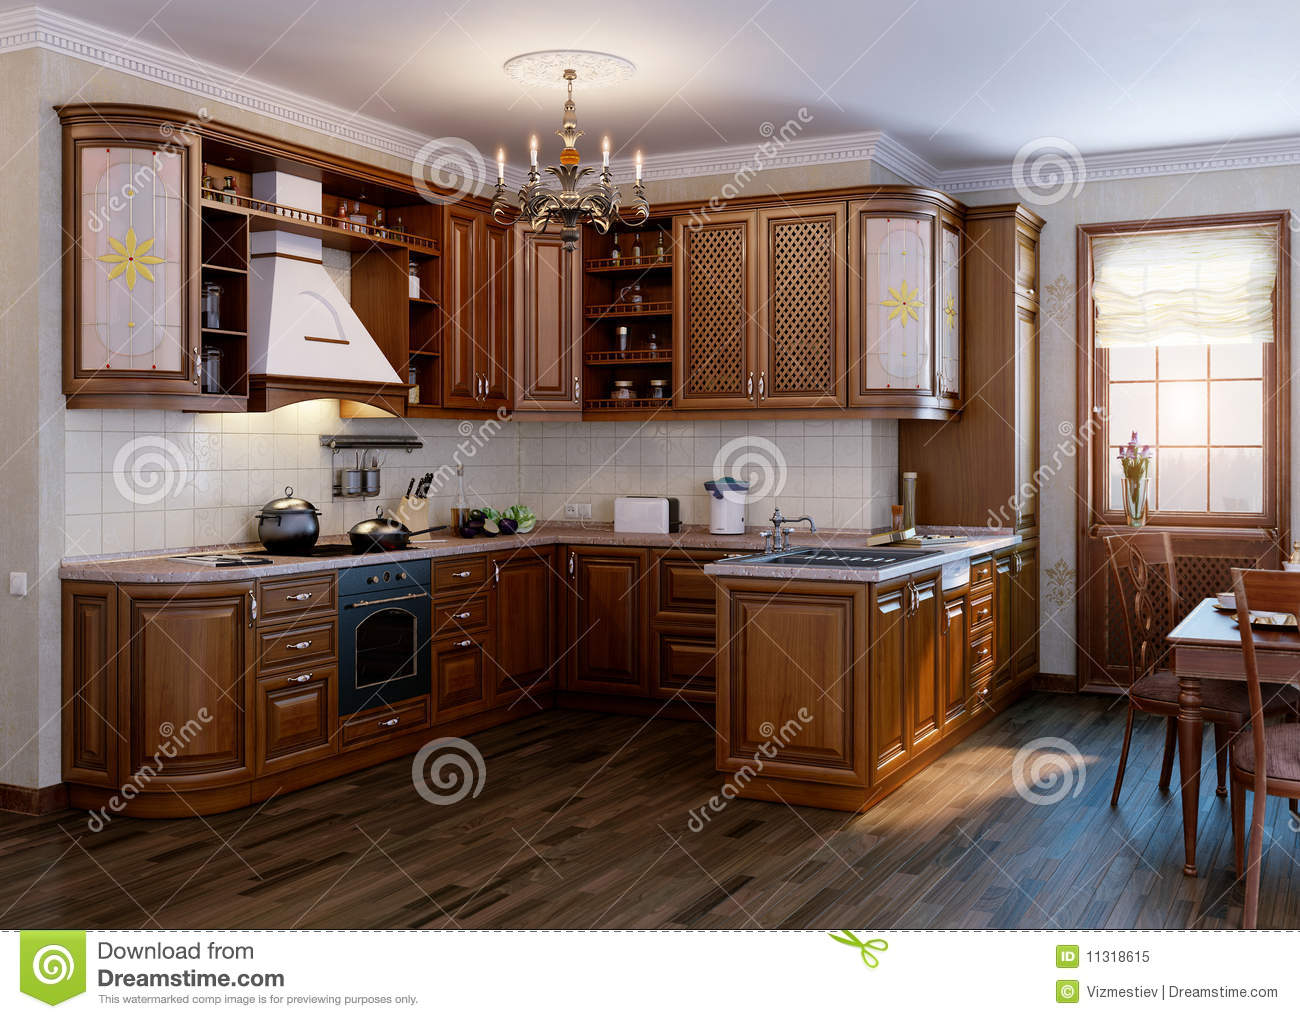 Classic Kitchen Royalty Free Stock Photo Image 11318615